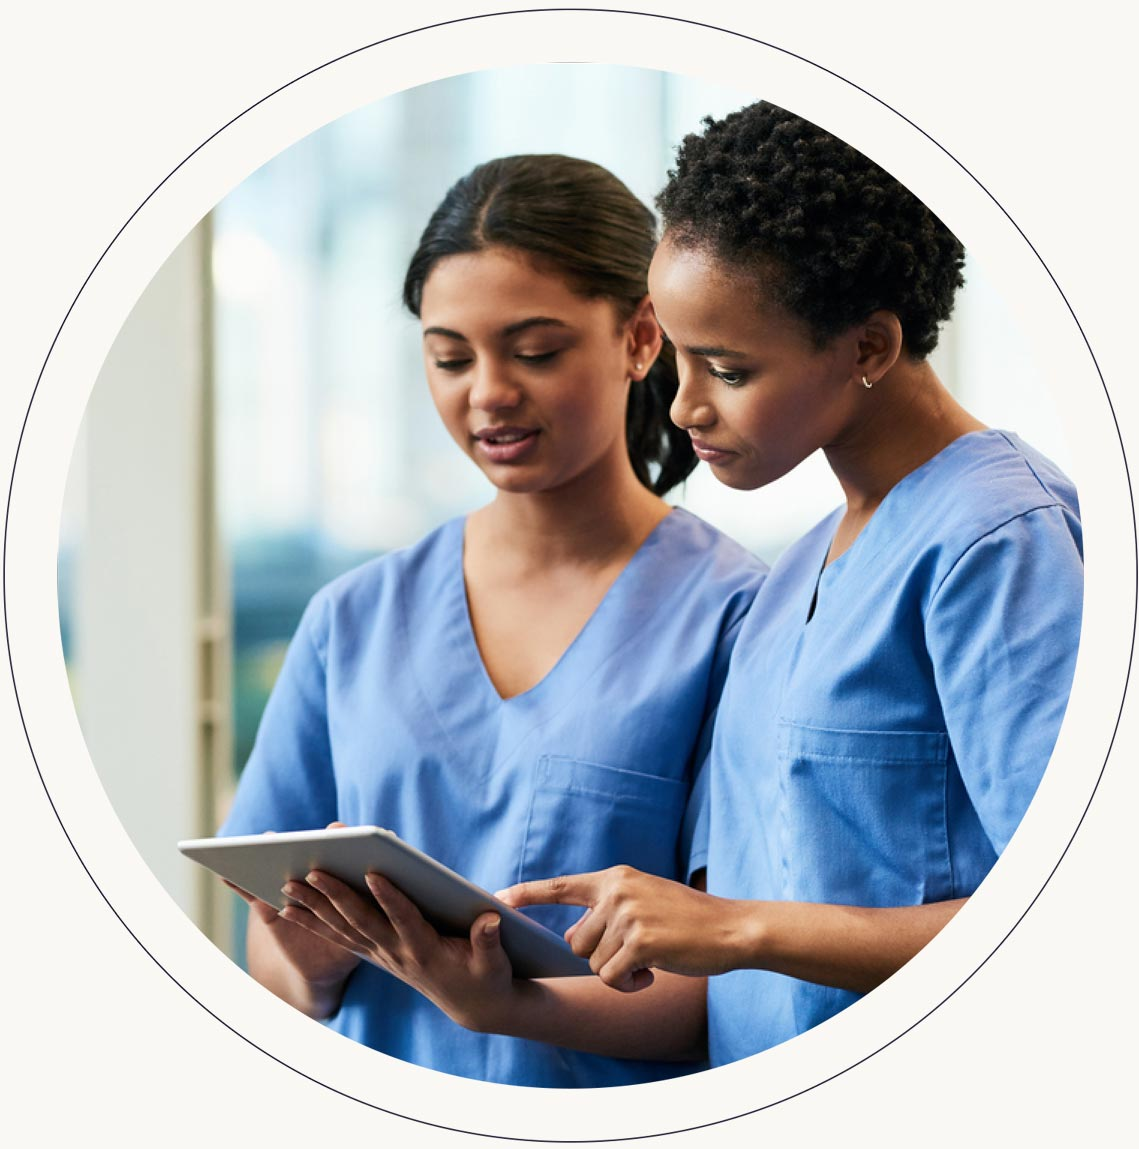 two nurses checking information on a tablet